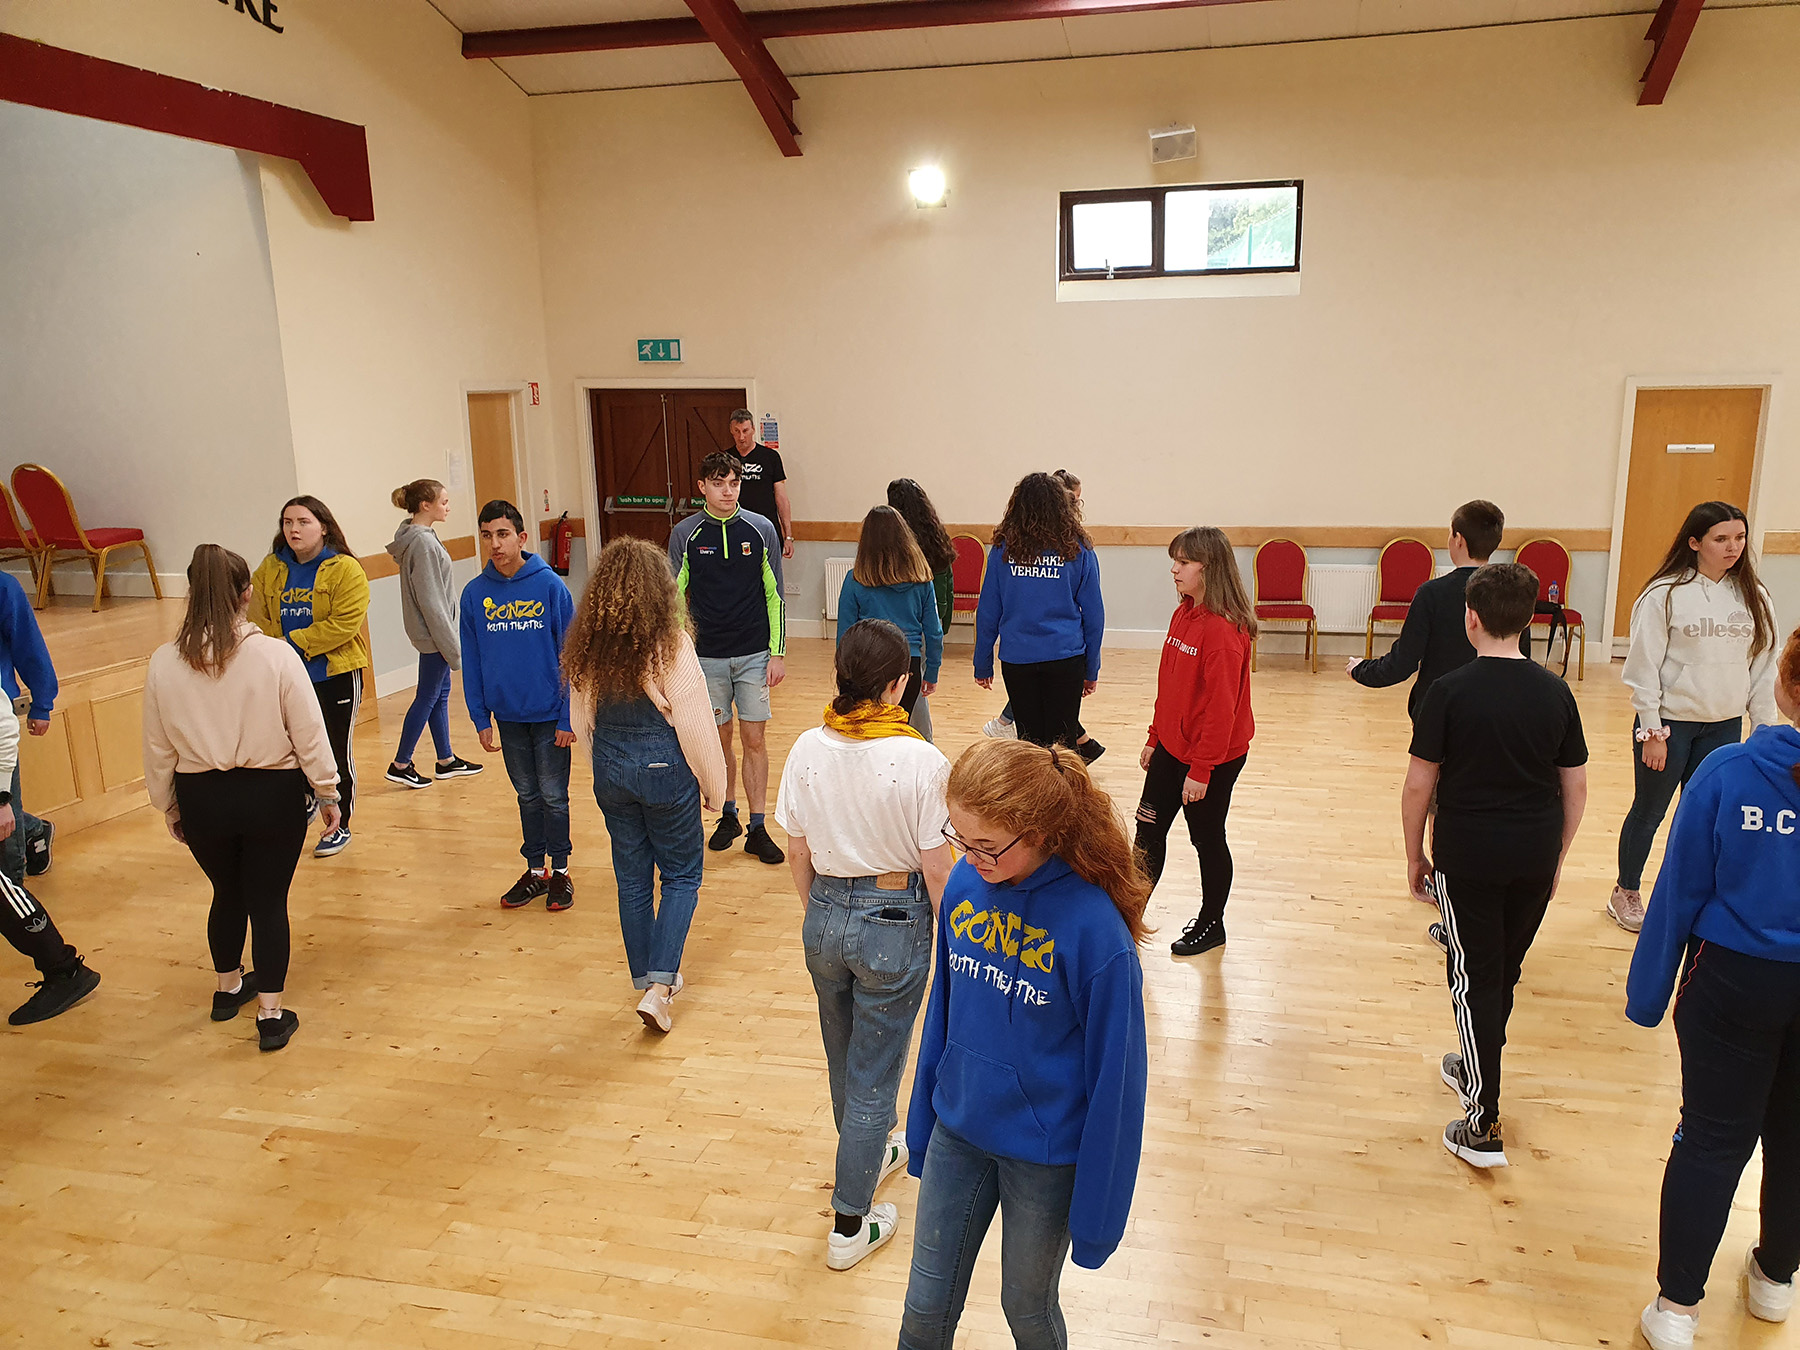 Term 1 (September - Dec 2020) | Gonzo Youth Theatre